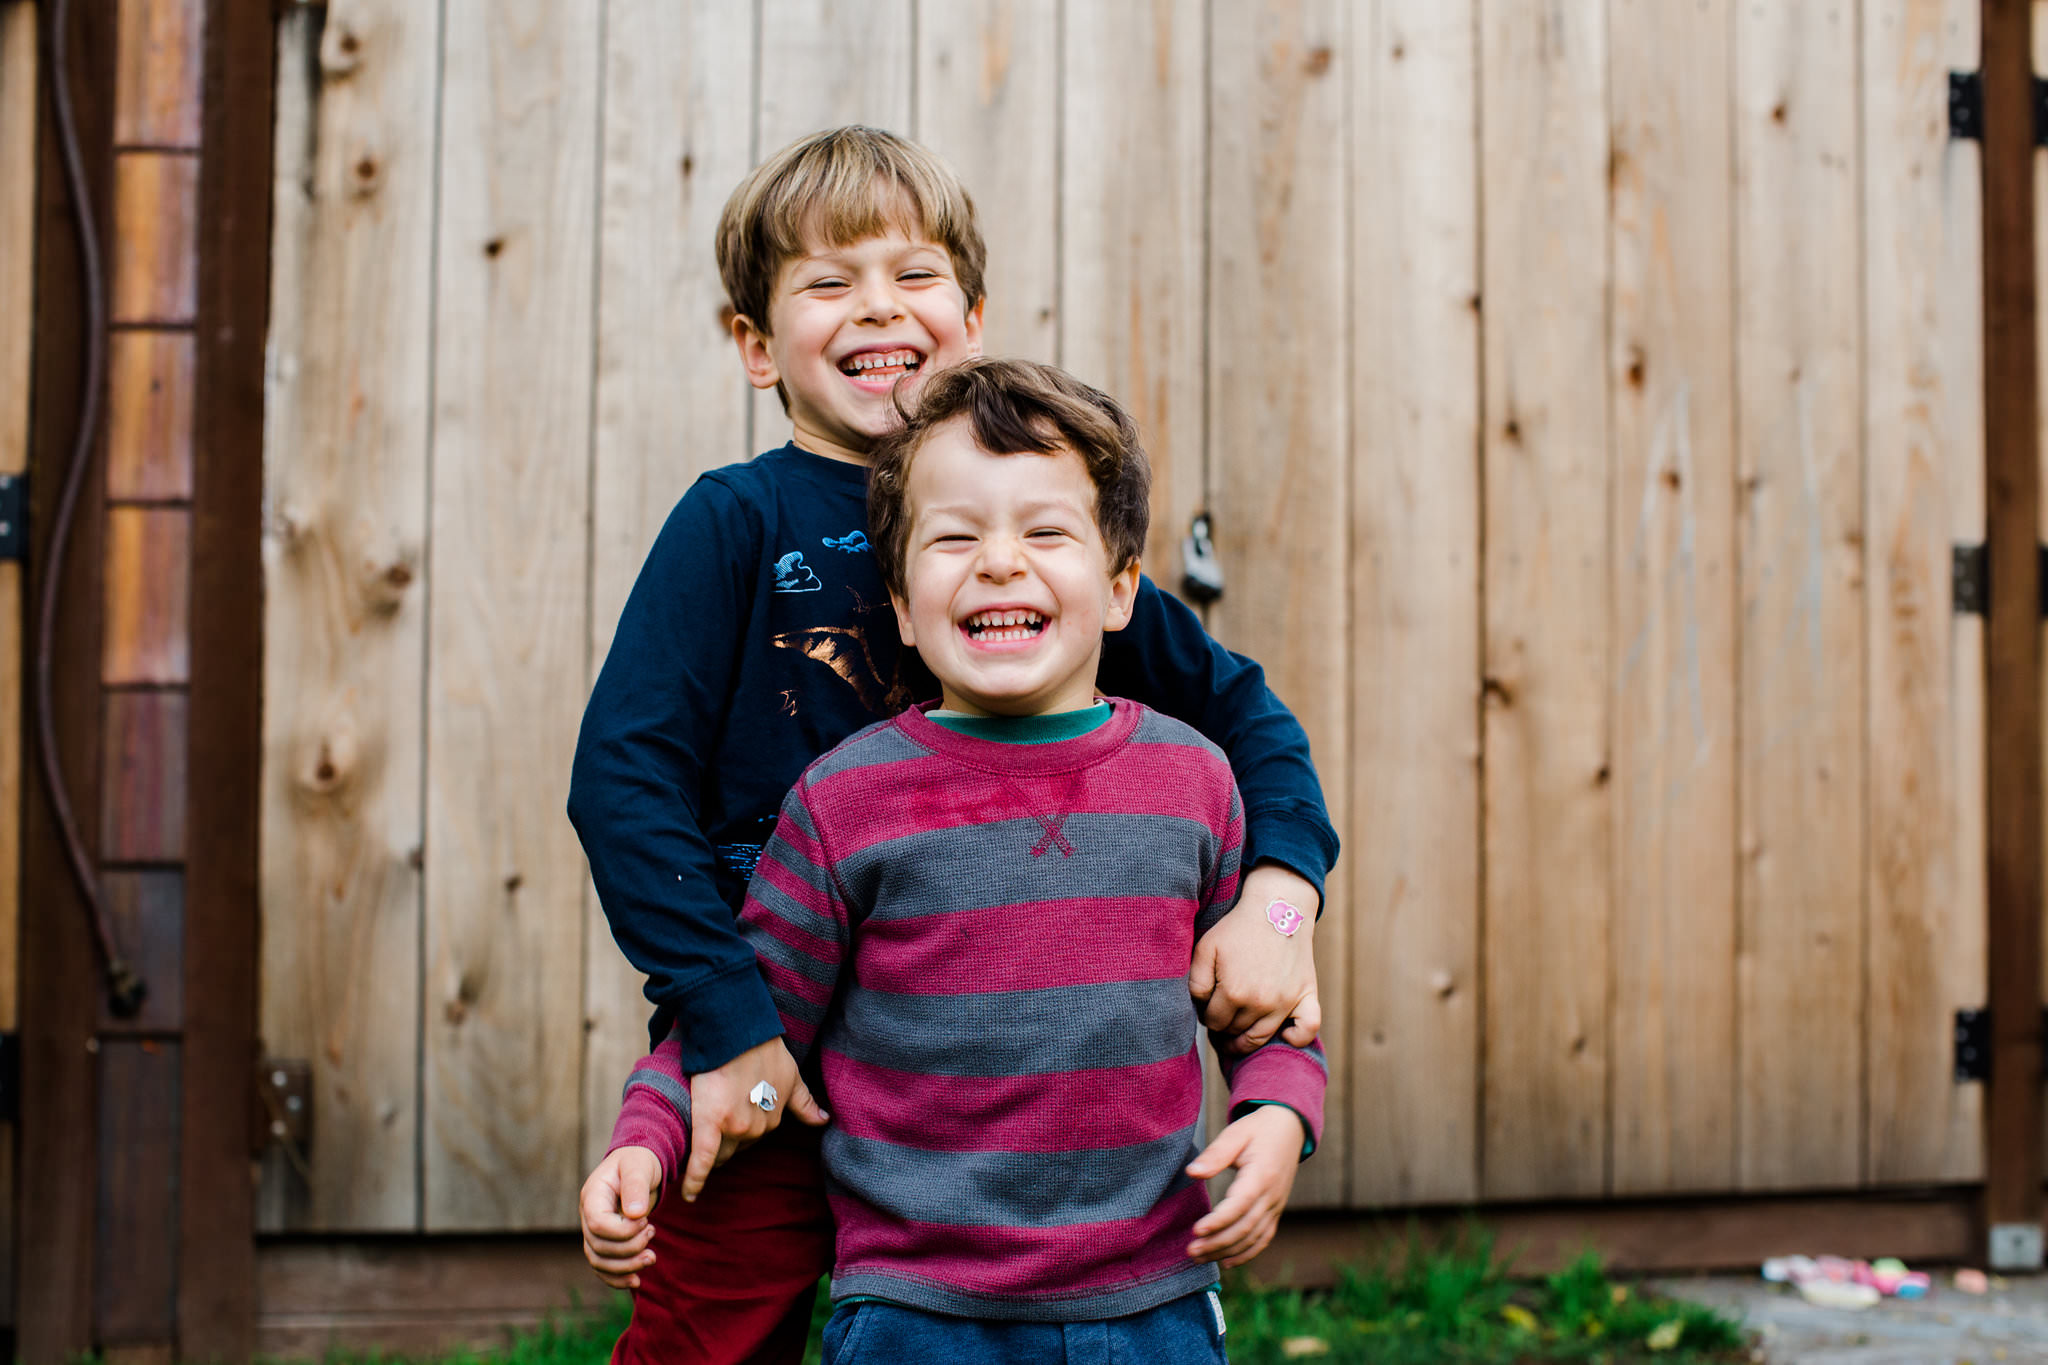 Backyard Photo shoot with kids in San Francisco